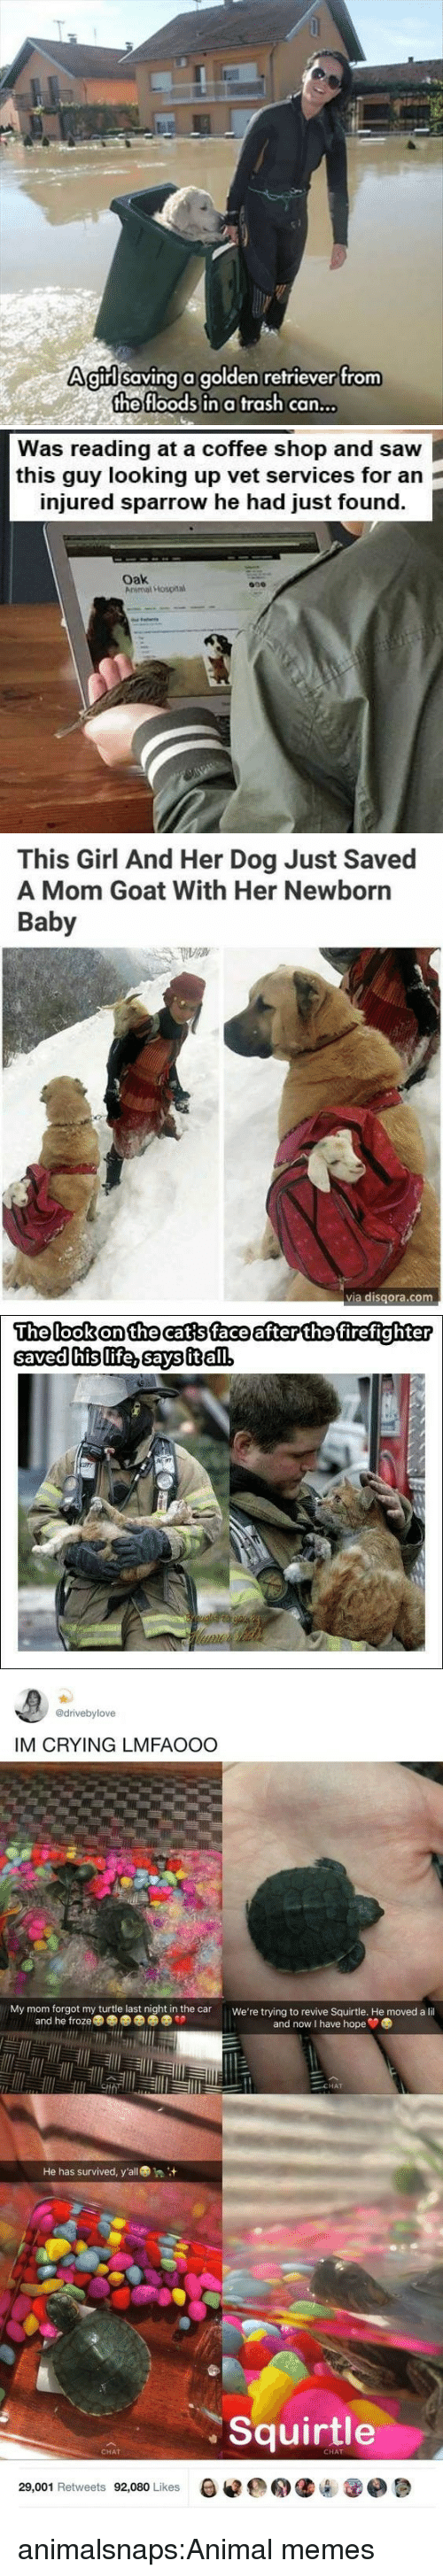 Firefighter: Agirllsaving a golden refriever trom  the floods in a trash can...   Was reading at a coffee shop and saw  this guy looking up vet services for an  injured sparrow he had just found.  oak  Arimal Hospna   This Girl And Her Dog Just Saved  A Mom Goat With Her Newborn  Baby  via disqora.com   The lookonthecatsface after the firefighter  savedhislife.savsitłal   @drivebylove  IM CRYING LMFAOOO  My mom forgot my turtle last night in the car  We're trying to revive Squirtle. He moved a lil  and he froze  and now I have hope  CHAT  He has survived, y'all  Squirtle  CHAT  CHAT  29,001 Retweets 92,080 Likes  0遽@用缱내 @e週 animalsnaps:Animal memes